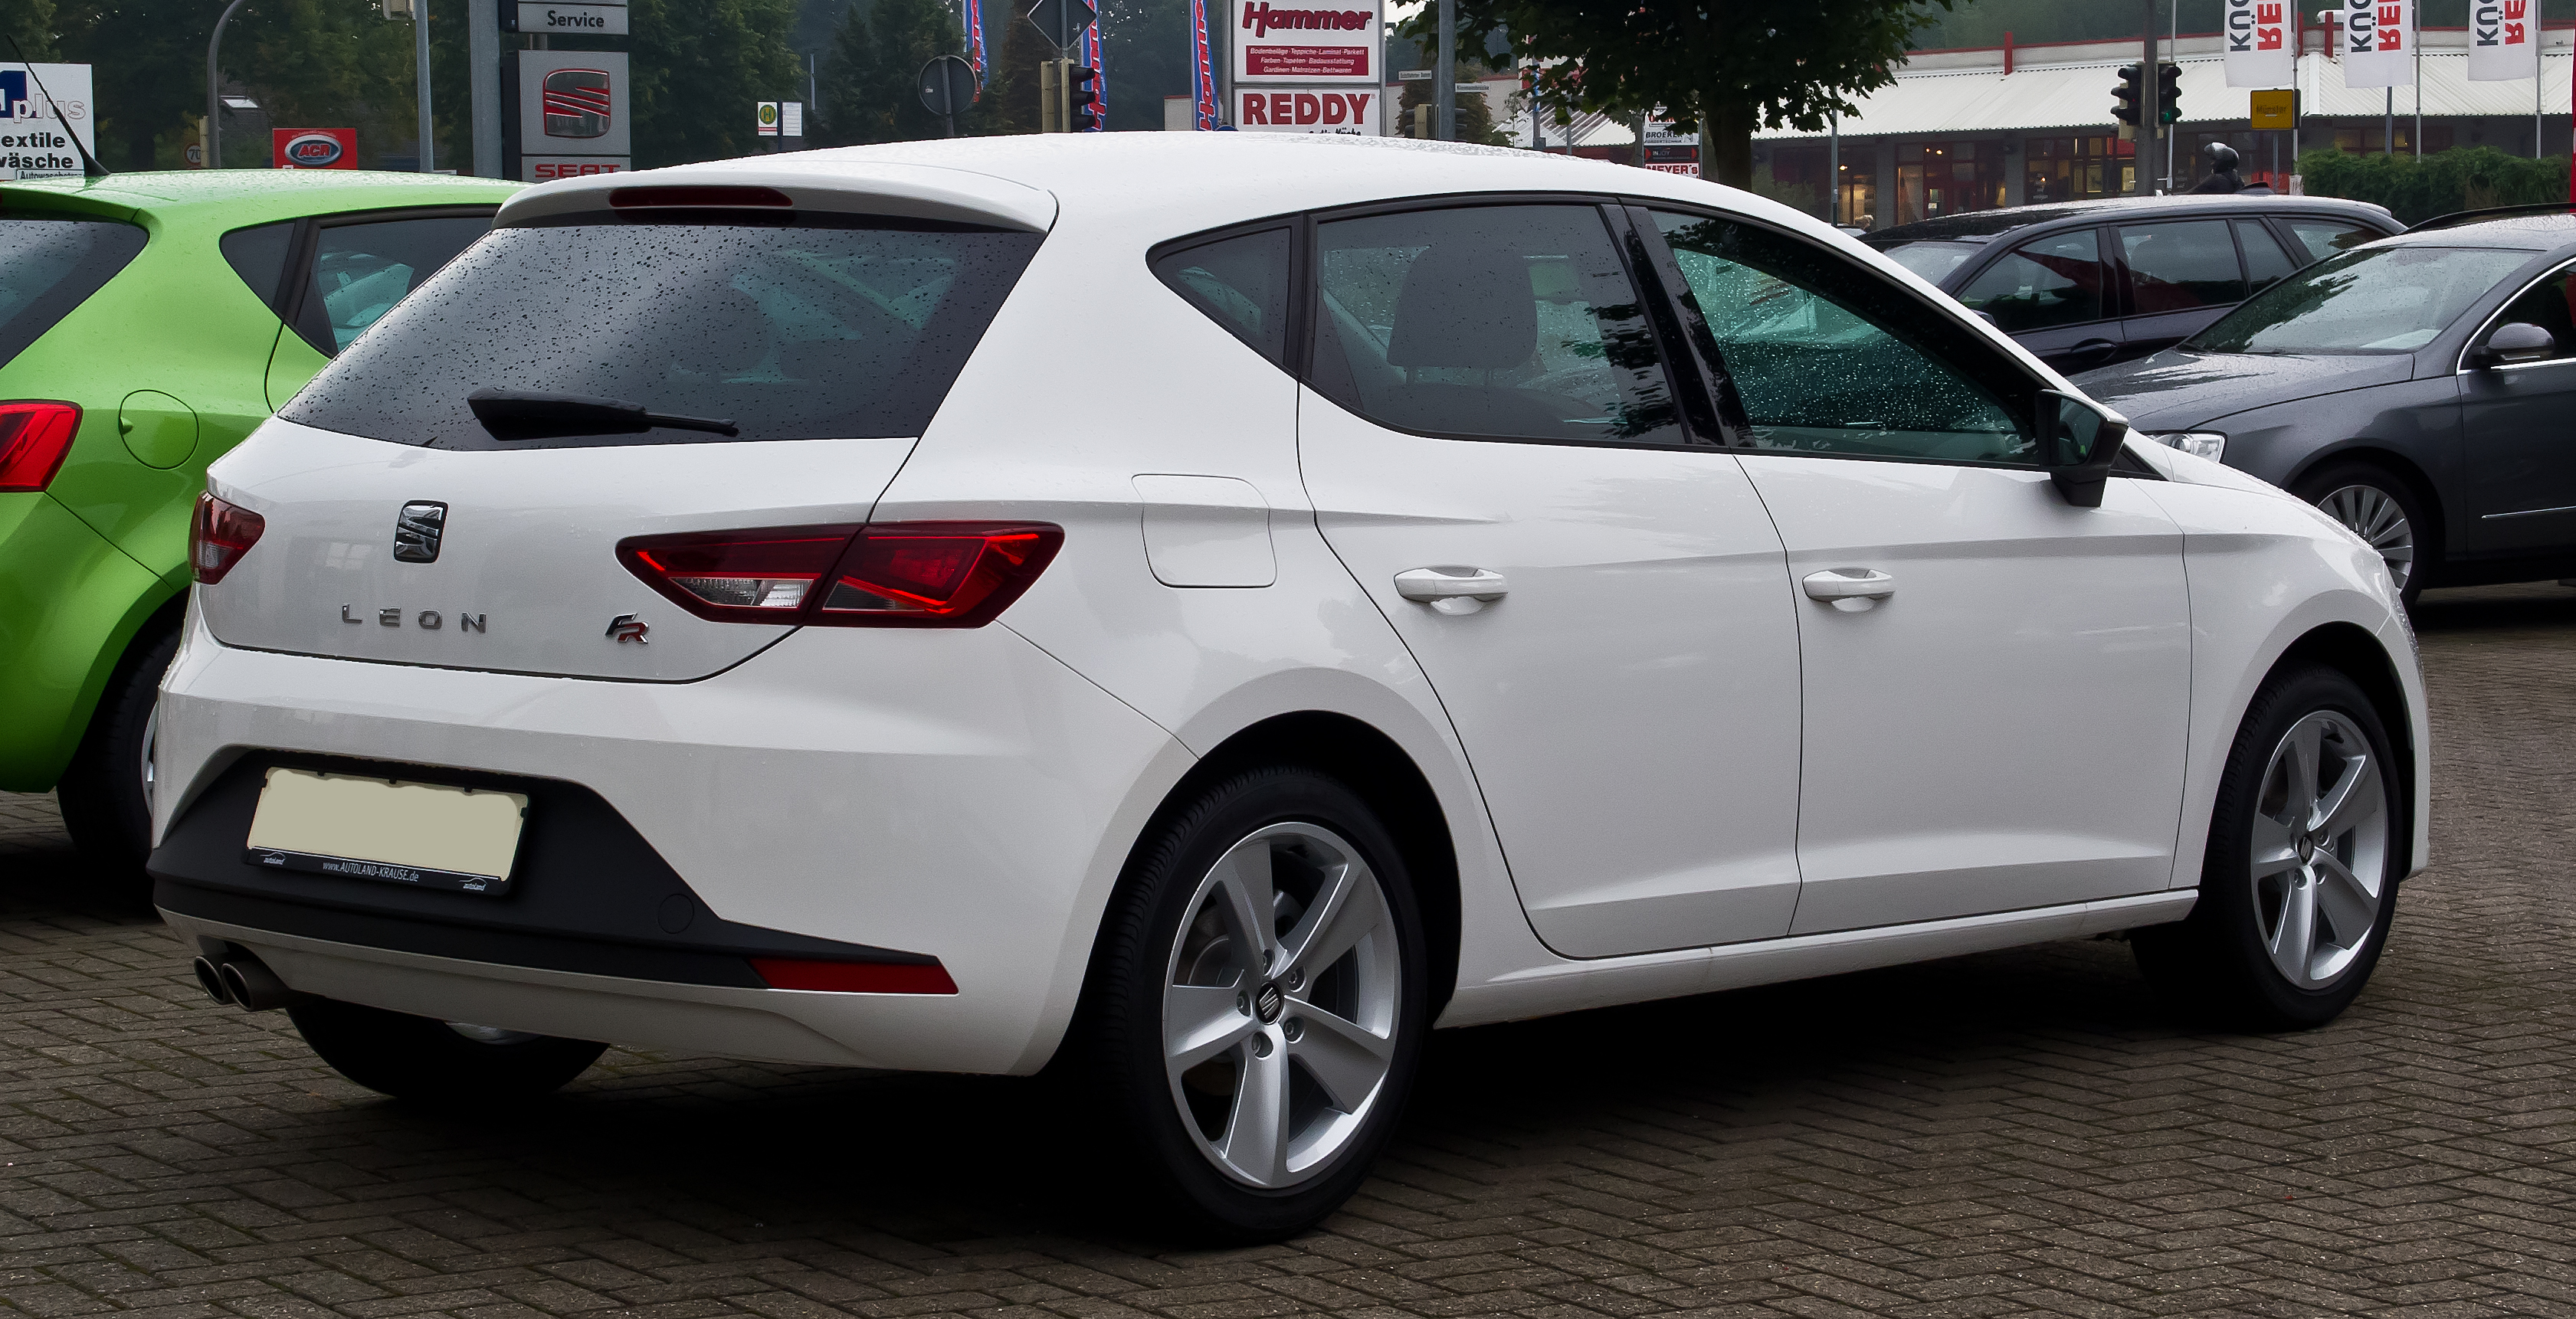 plik seat leon 1 4 tsi start stop fr iii heckansicht 7 september 2013 m. Black Bedroom Furniture Sets. Home Design Ideas